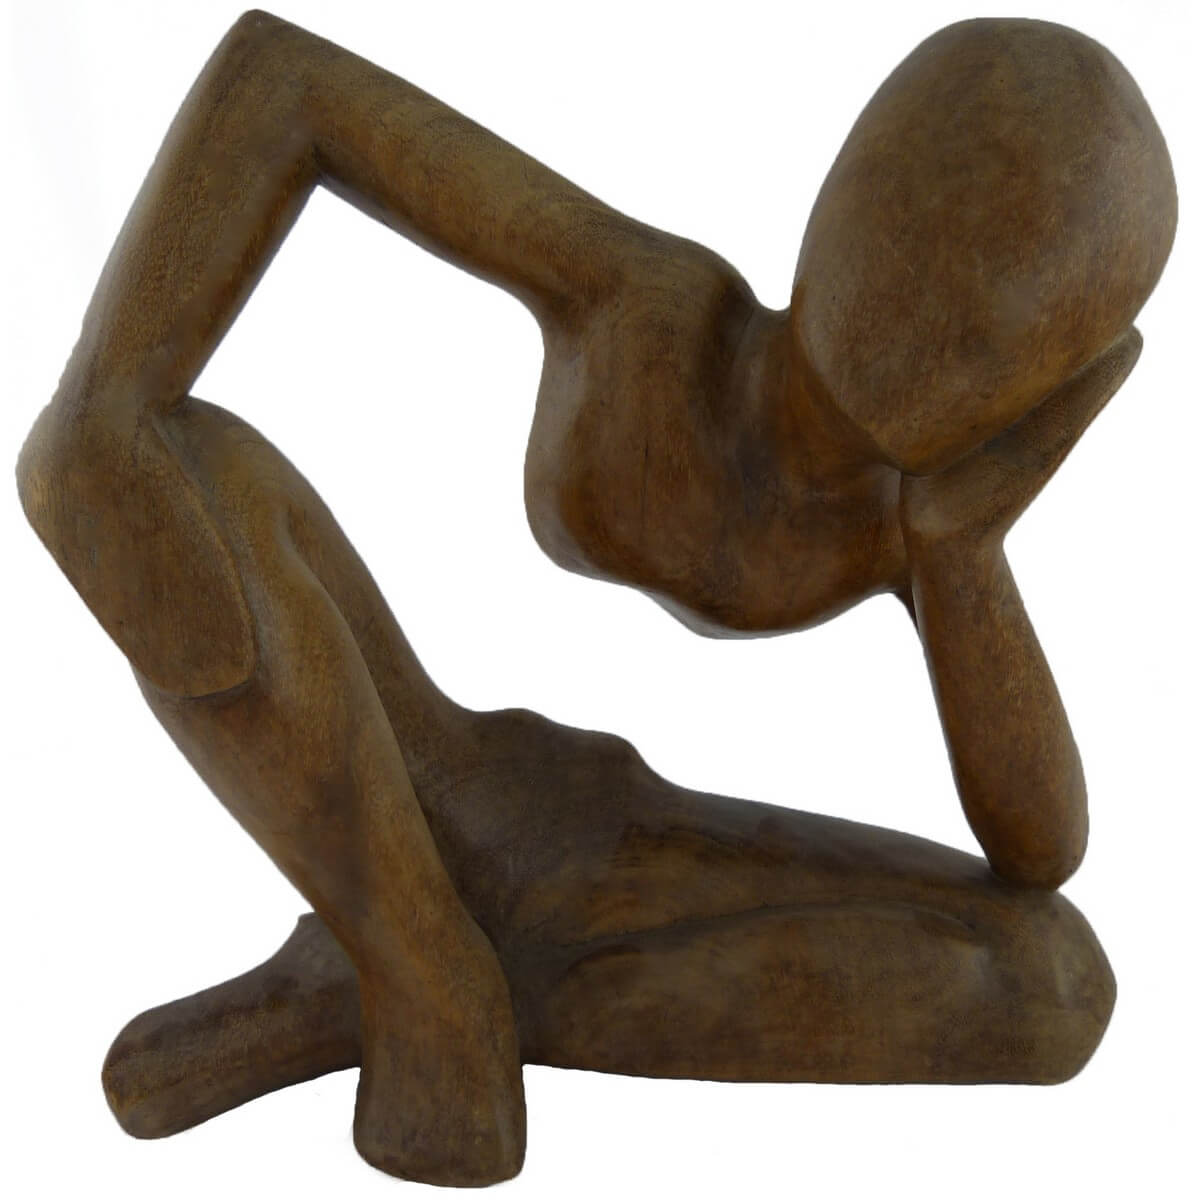 holz figur skulptur abstrakt holzfigur afrika deko. Black Bedroom Furniture Sets. Home Design Ideas